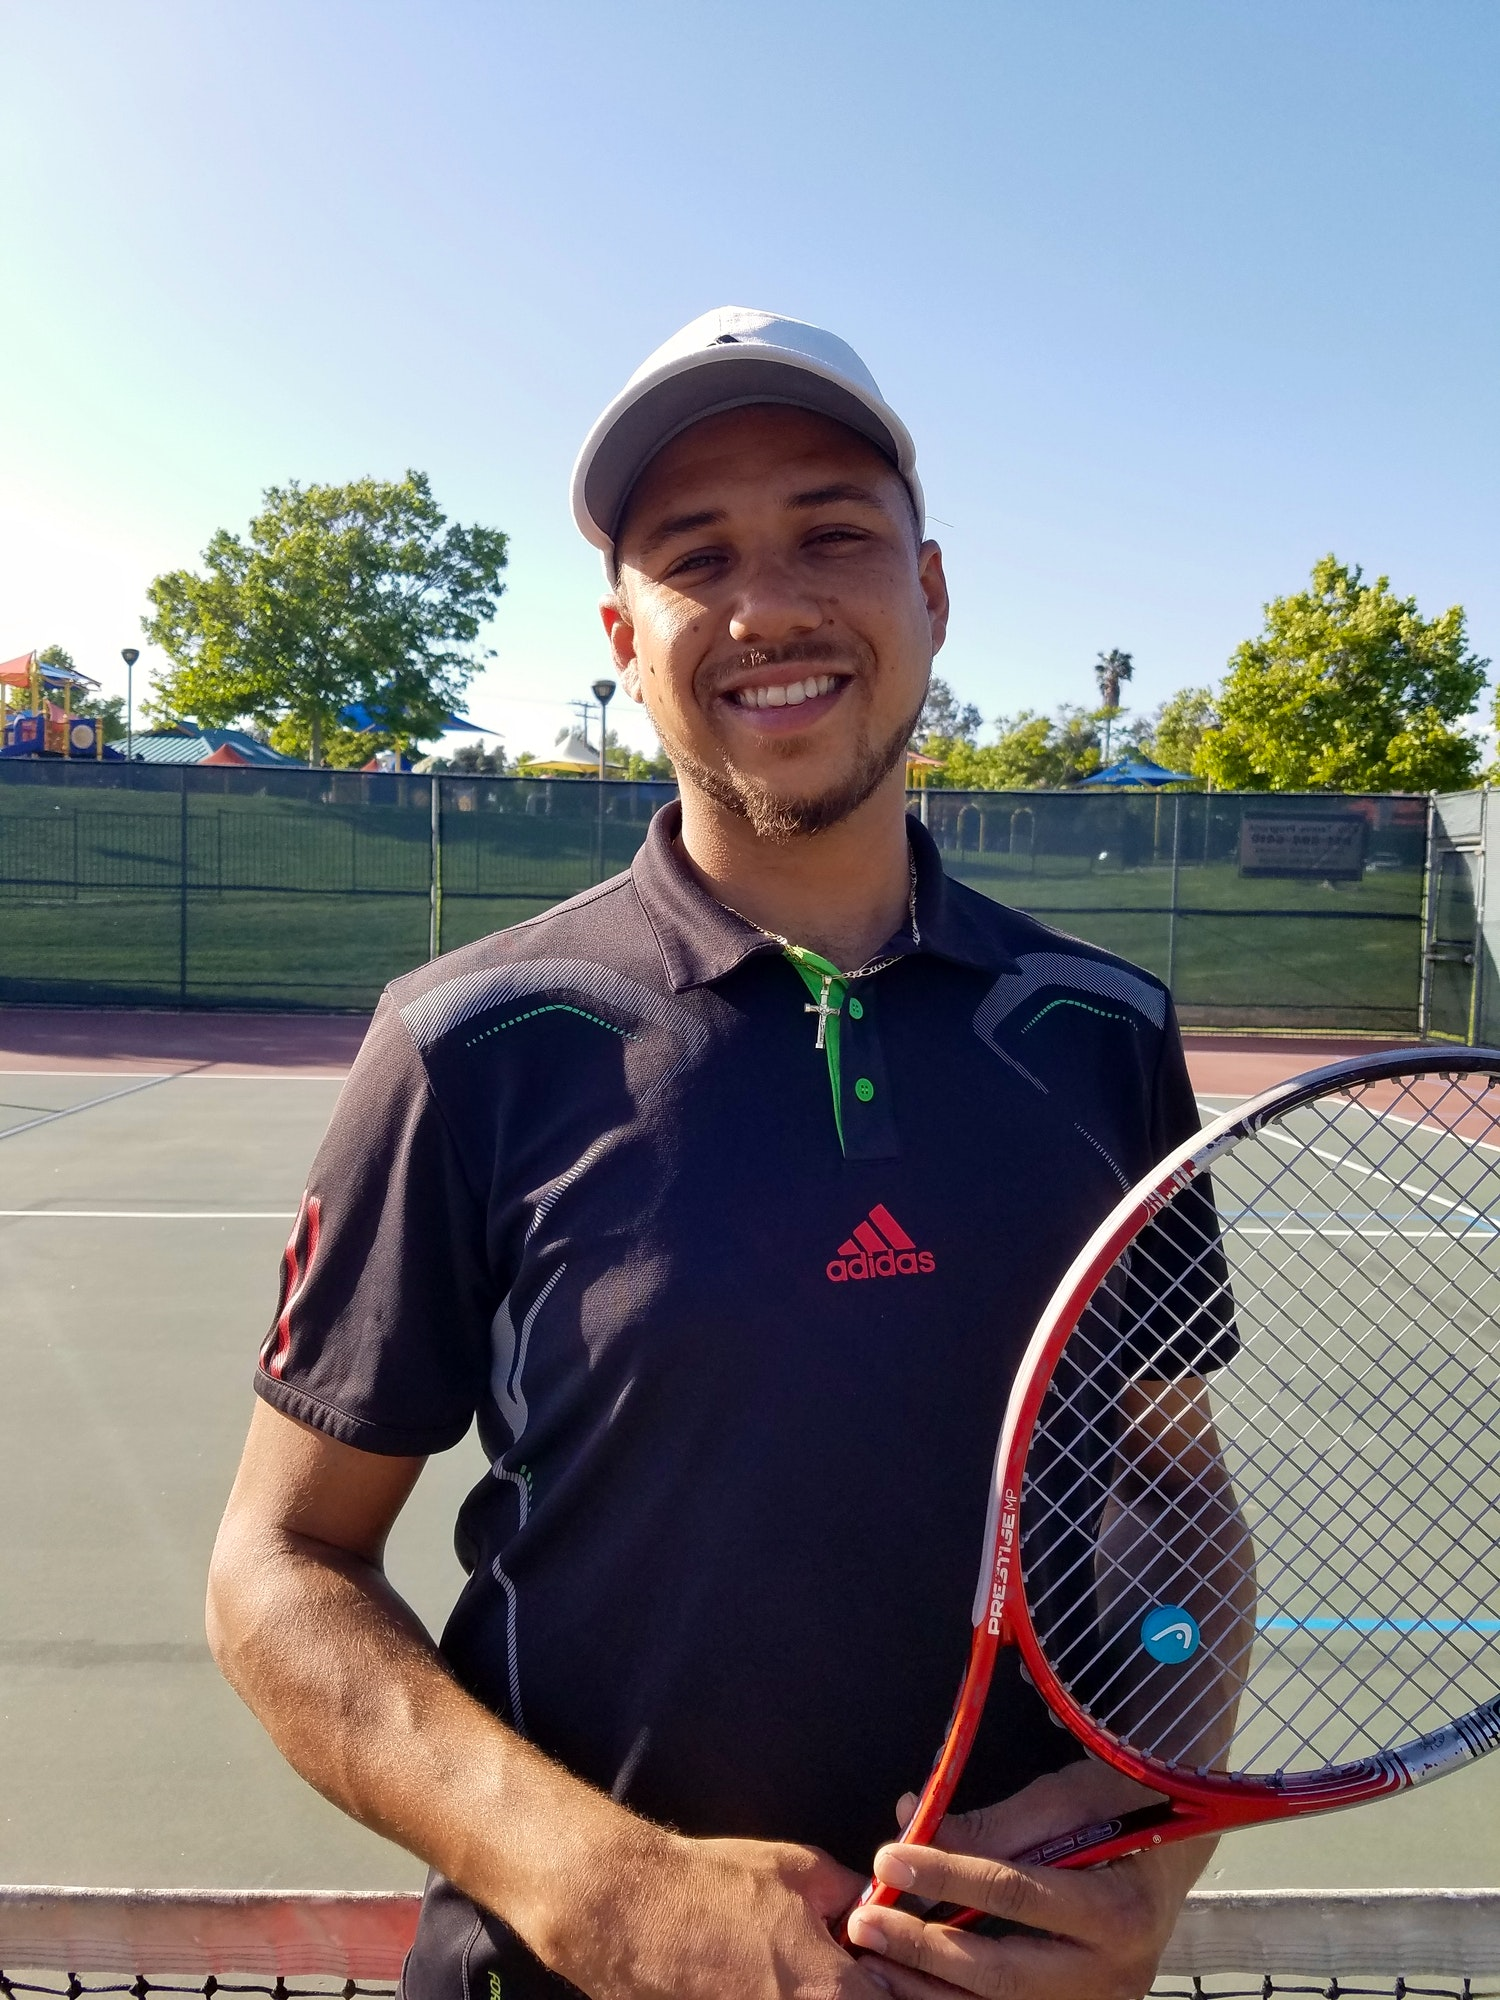 Peter D. teaches tennis lessons in Perris, CA